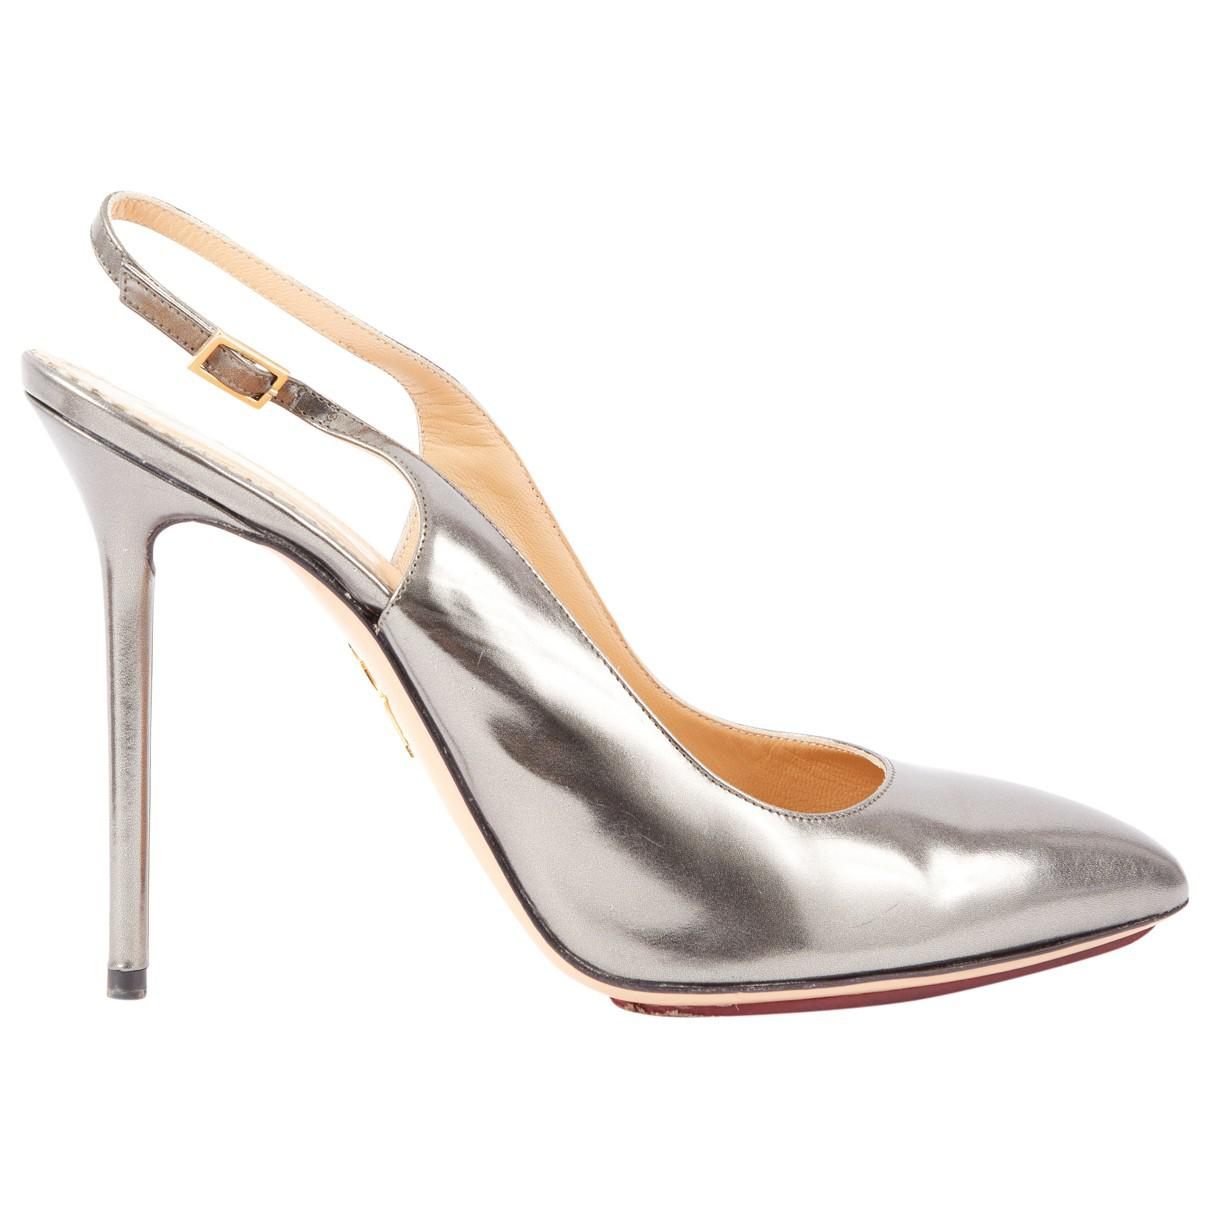 Pre-owned - Patent leather heels Charlotte Olympia Buy Cheap Sast 1sGrzqrnU9